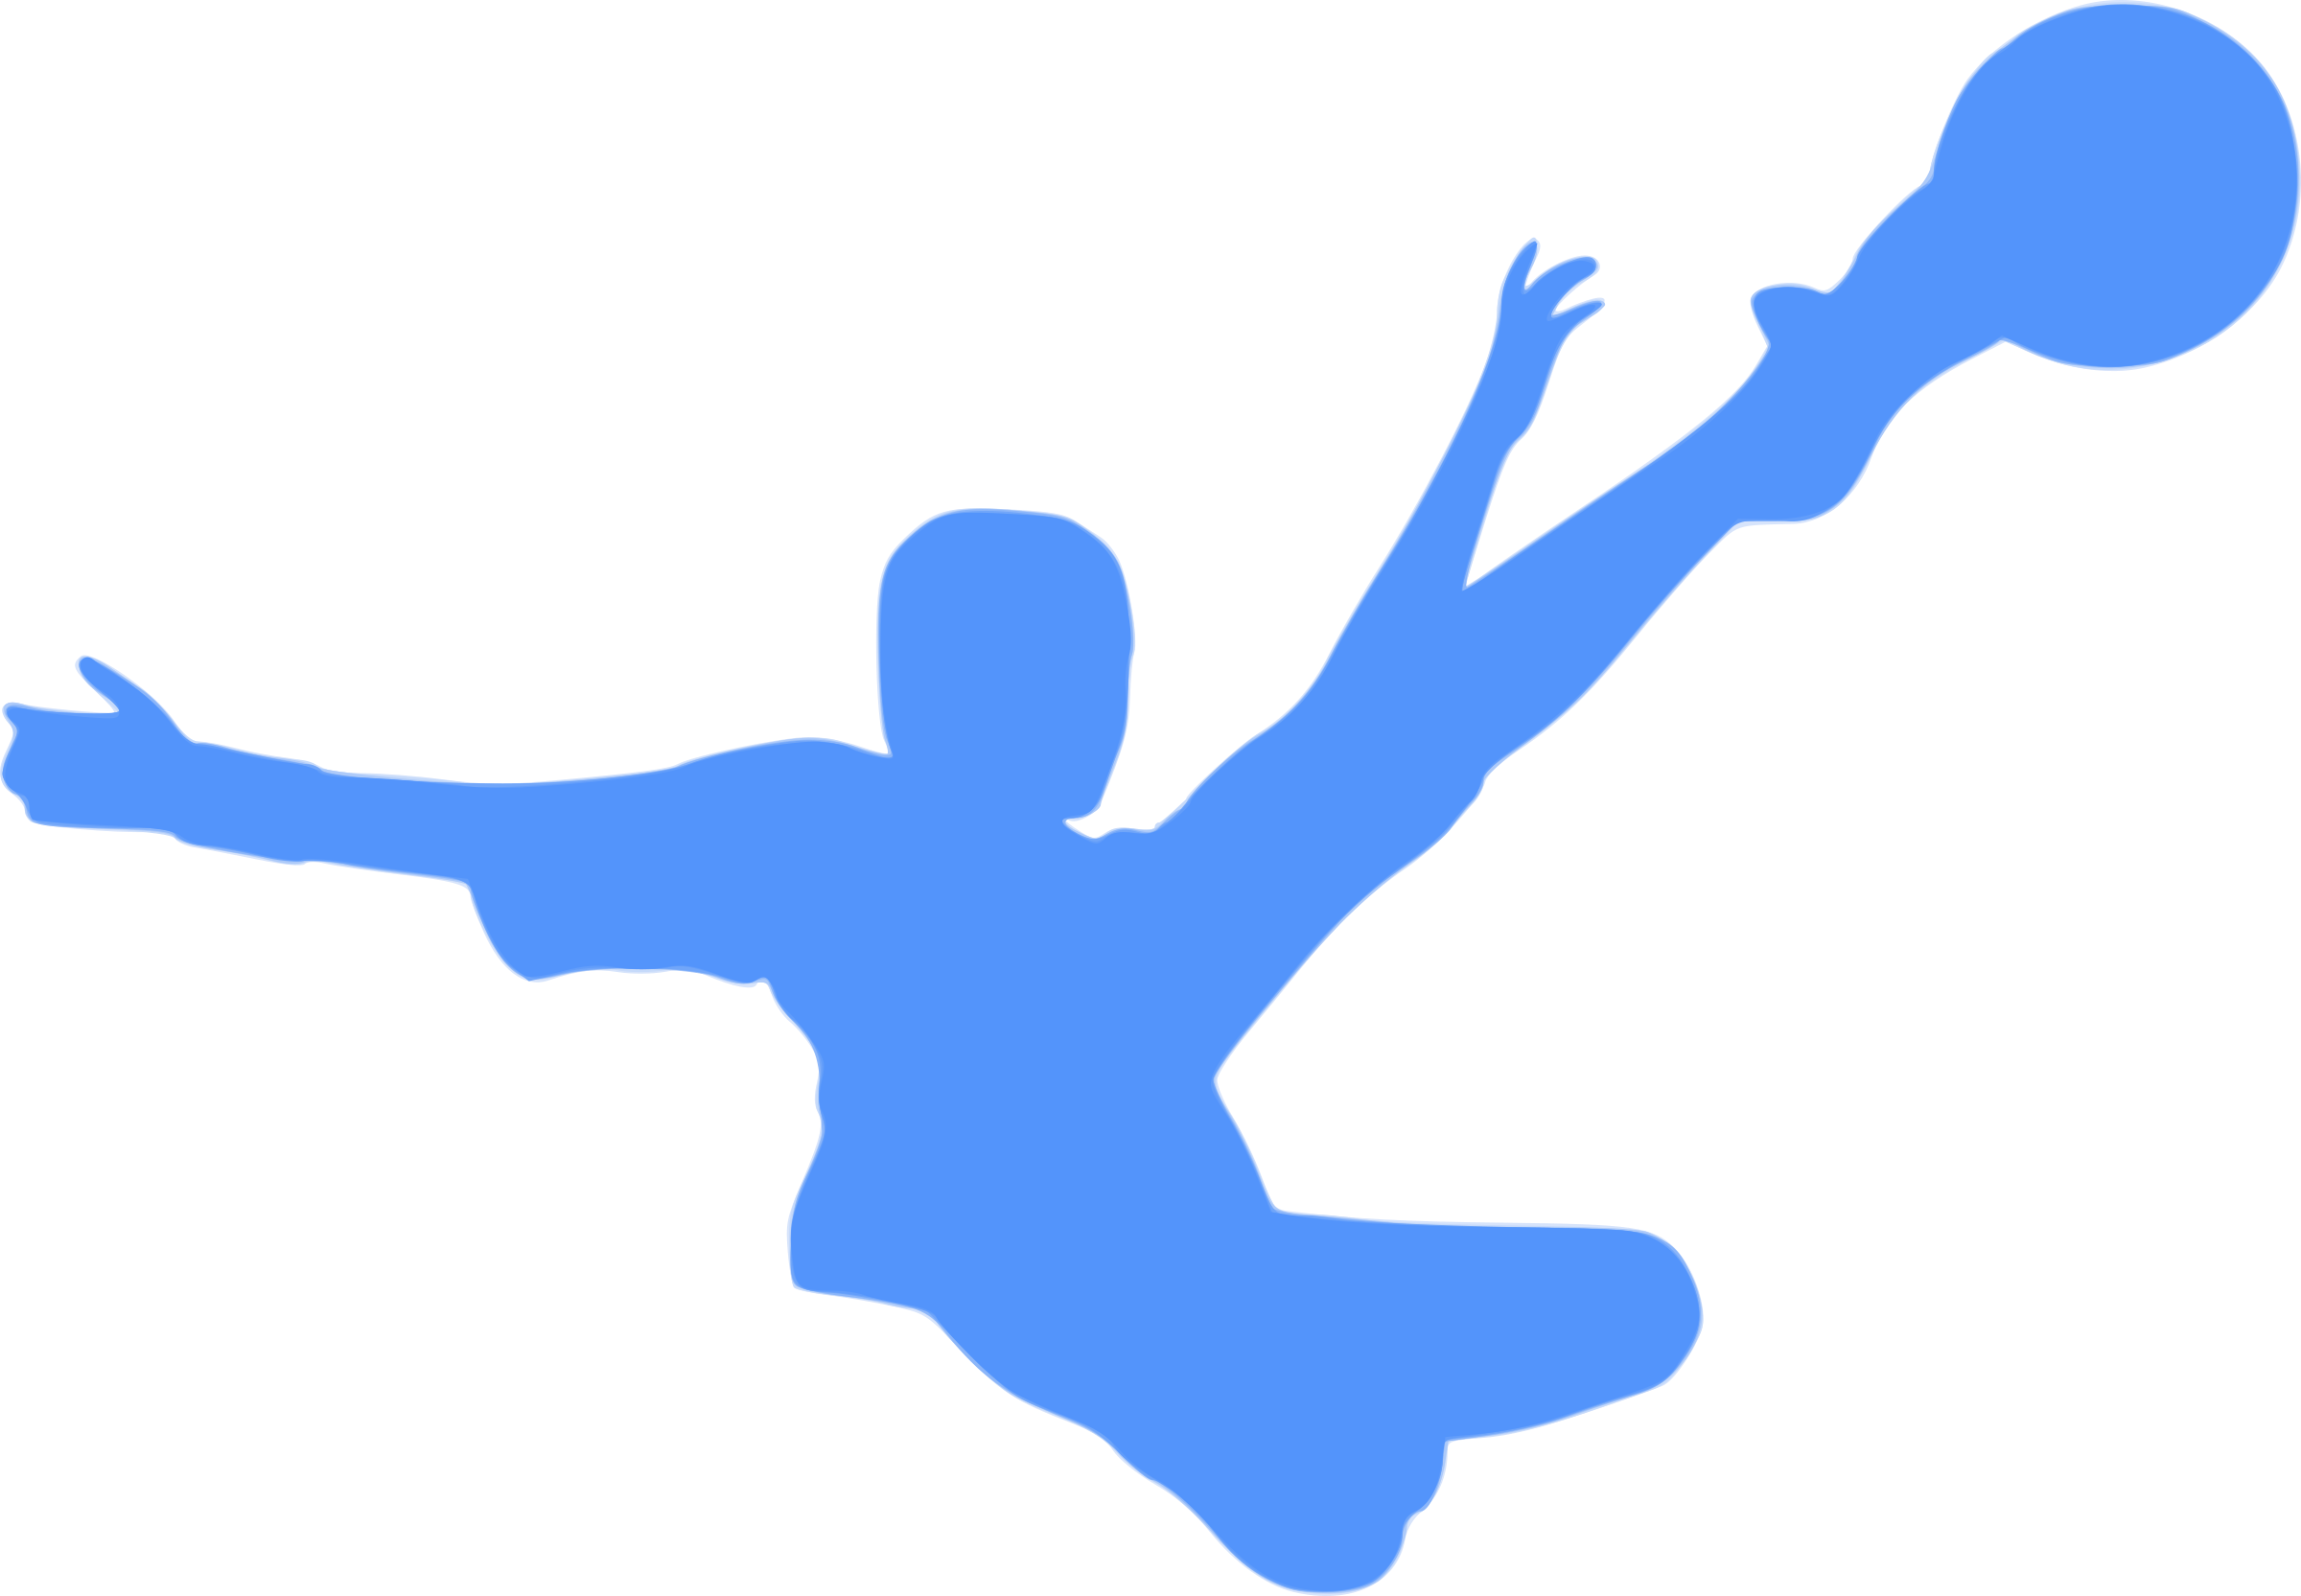 clipart volleyball silhouette